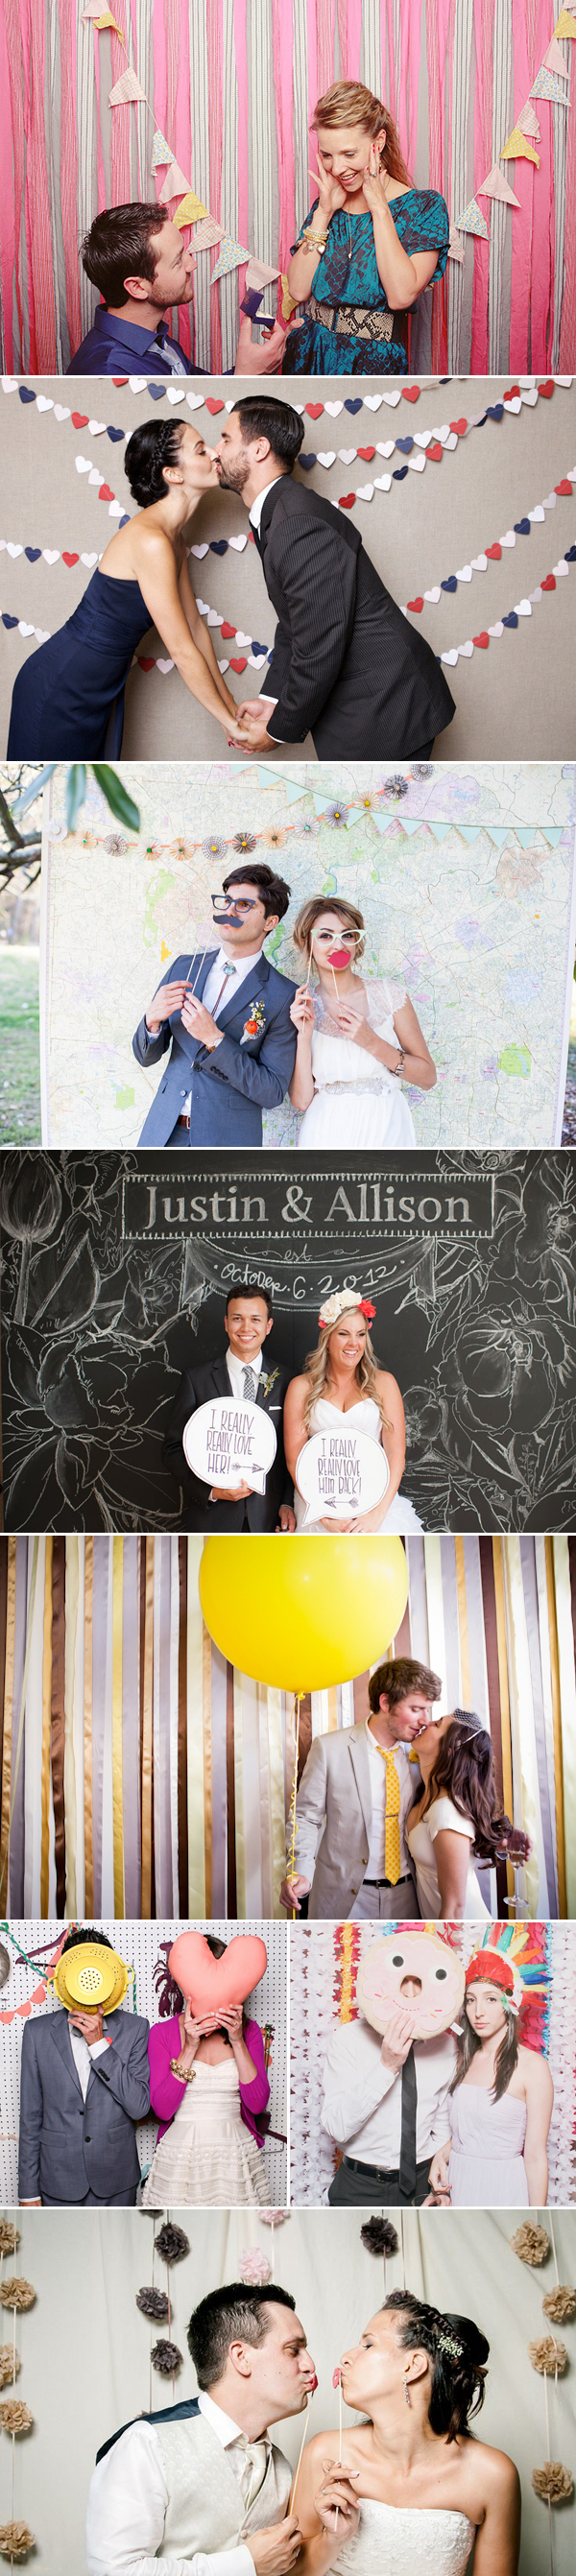 26 Unique & Creative Photo Booth Ideas